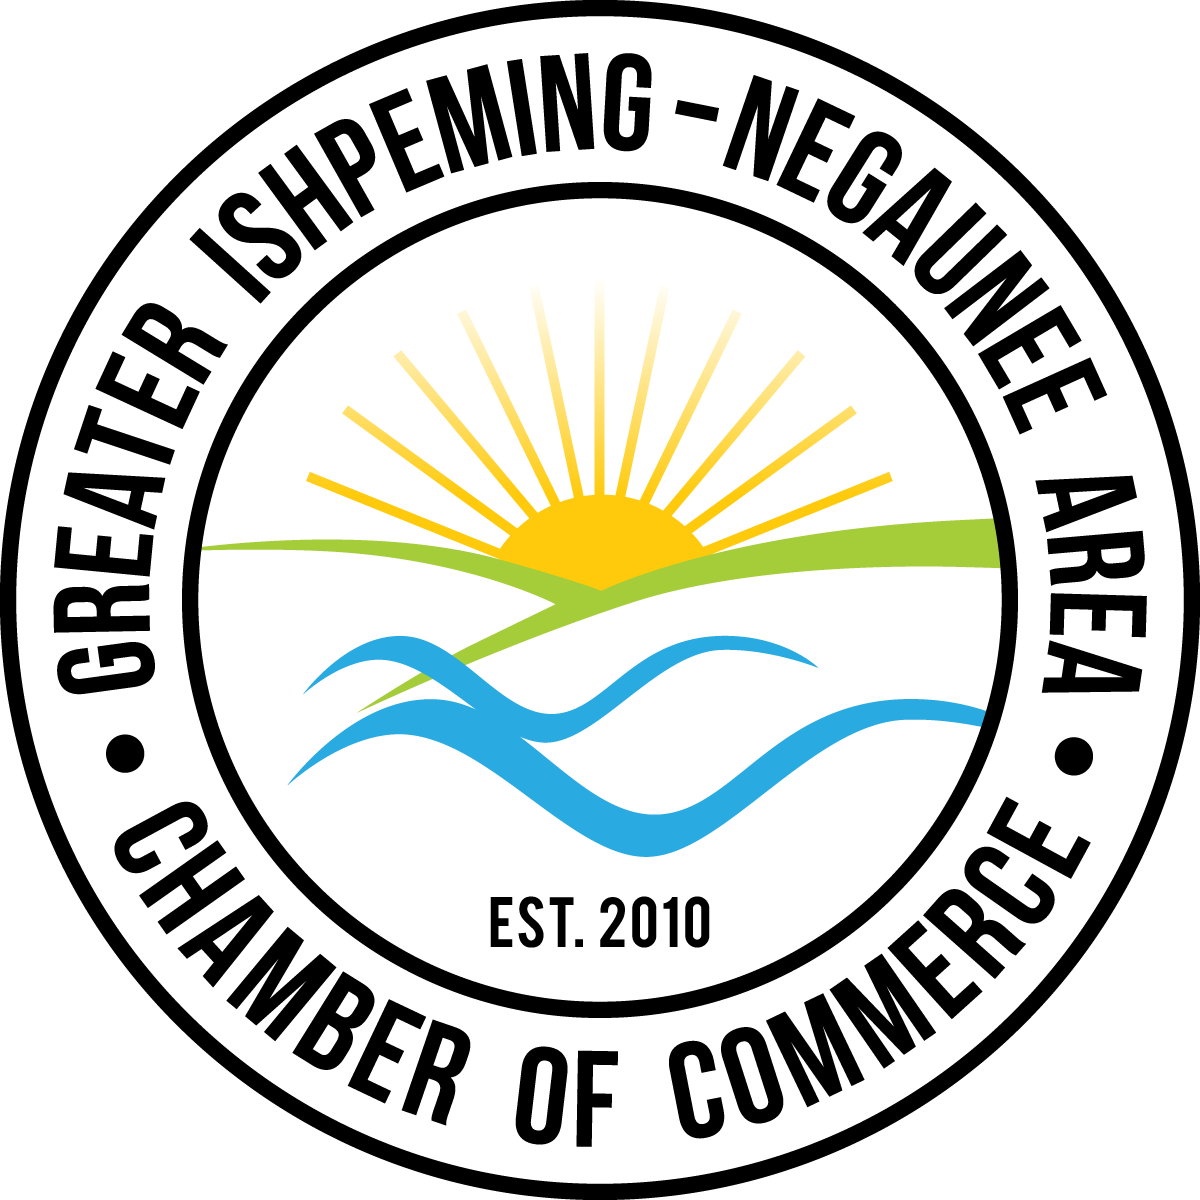 Greater Ishpeming-Negaunee Area Chamber of Commerce